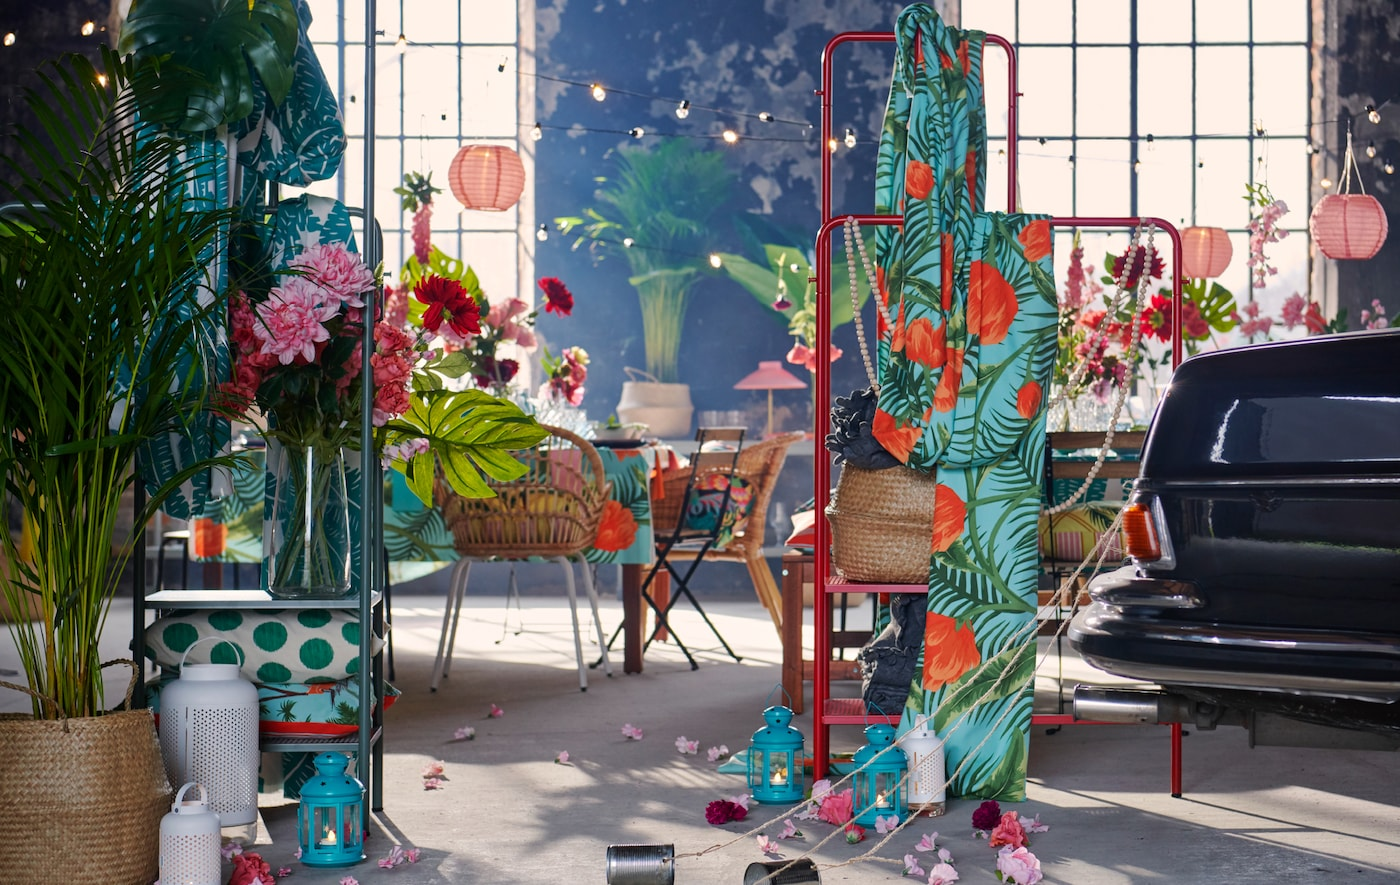 Spacious, industrial interior set for a party with textiles, decorations, plants and the end of a car with trailing tin cans.